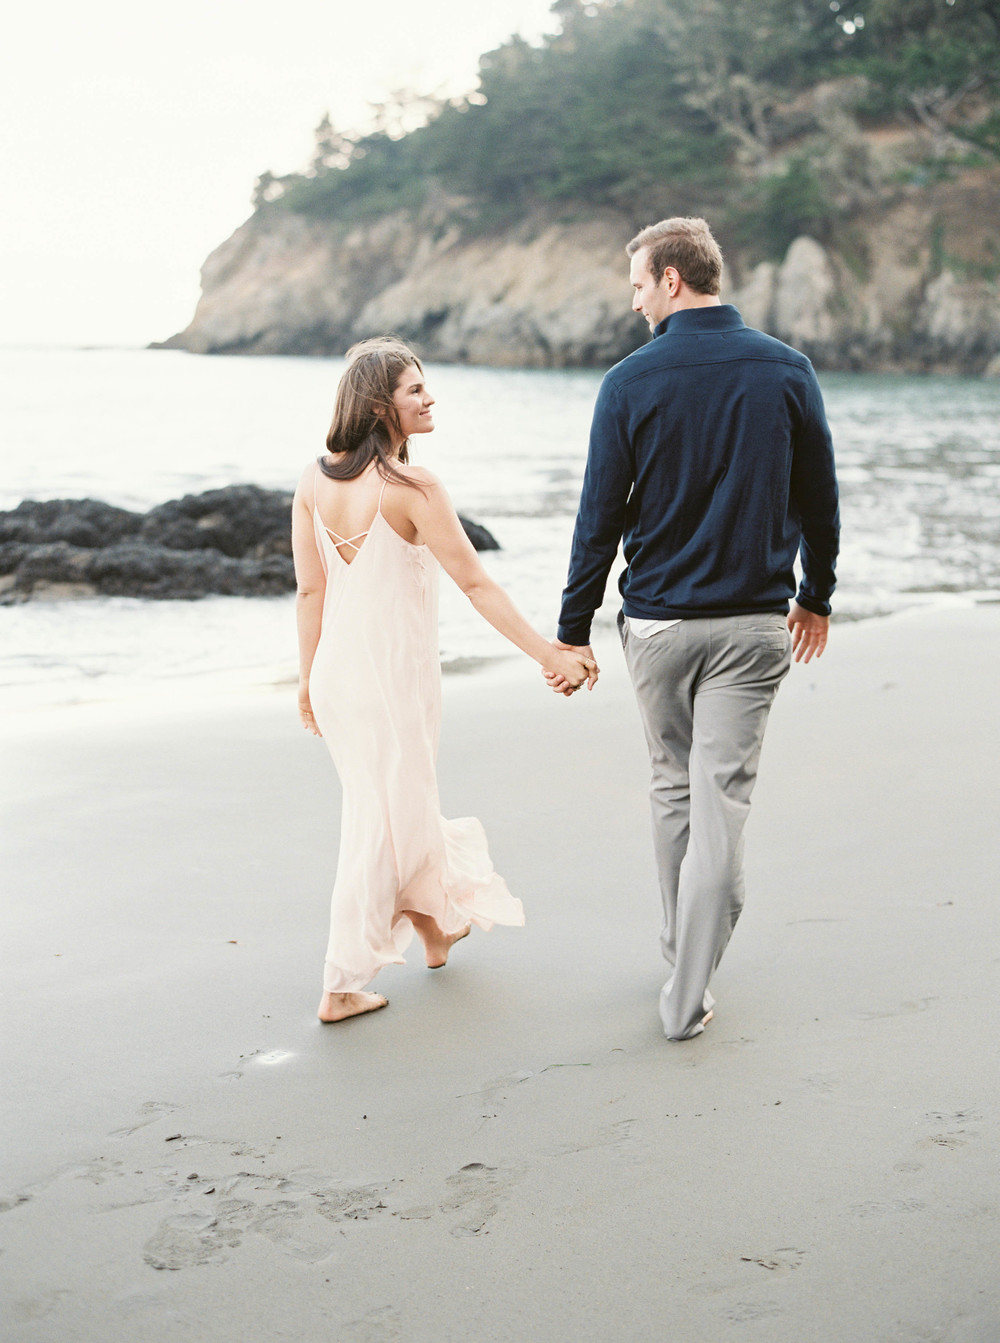 Meghan Mehan Photography - Fine Art Film Wedding Photography - San Francisco | Napa | Sonoma | Big Sur | Santa Barbara - 101.jpg